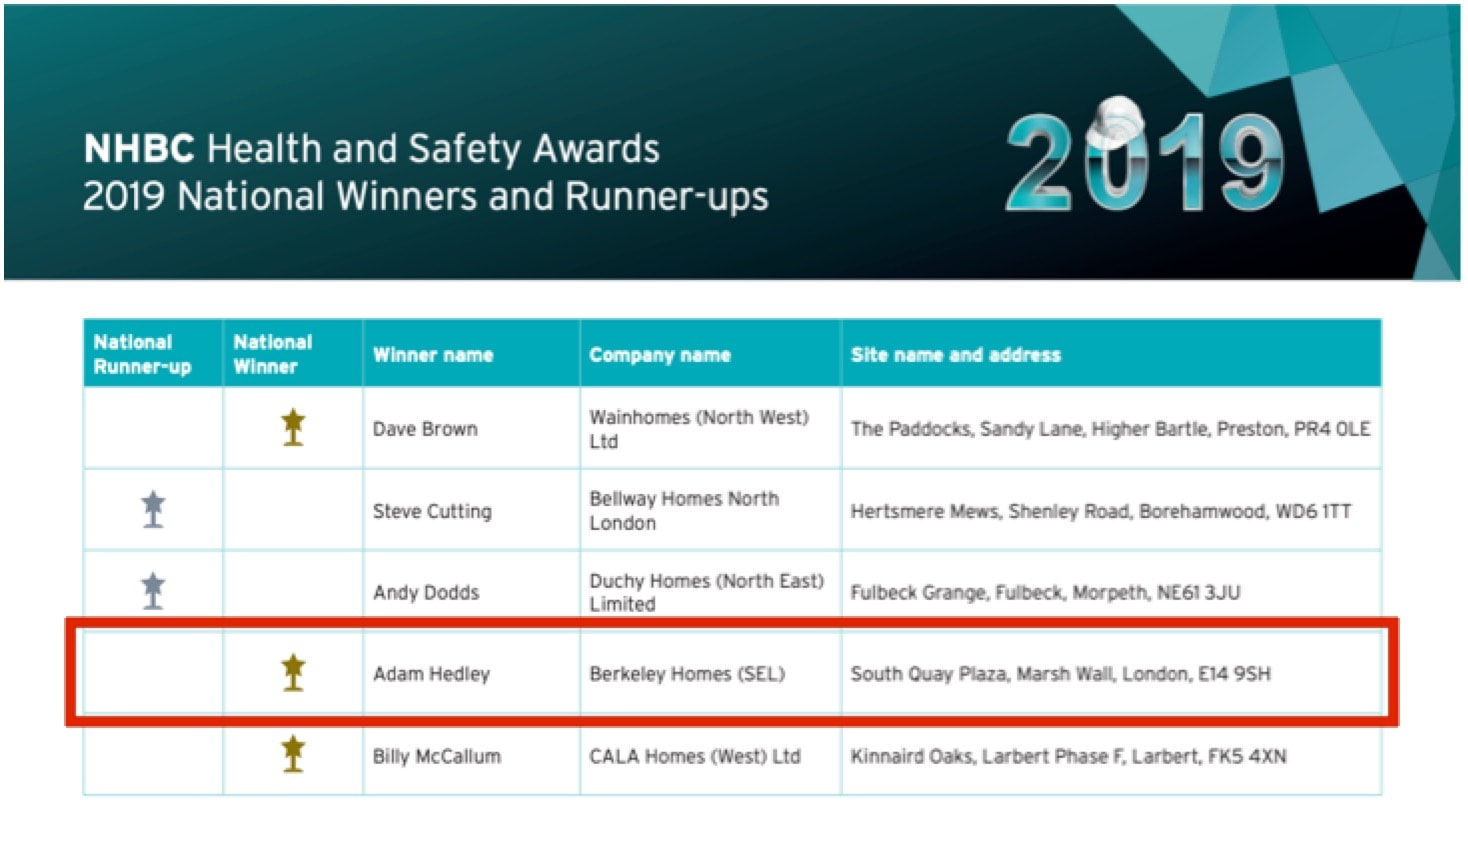 SQP Wins NHBC Health and Safety Award